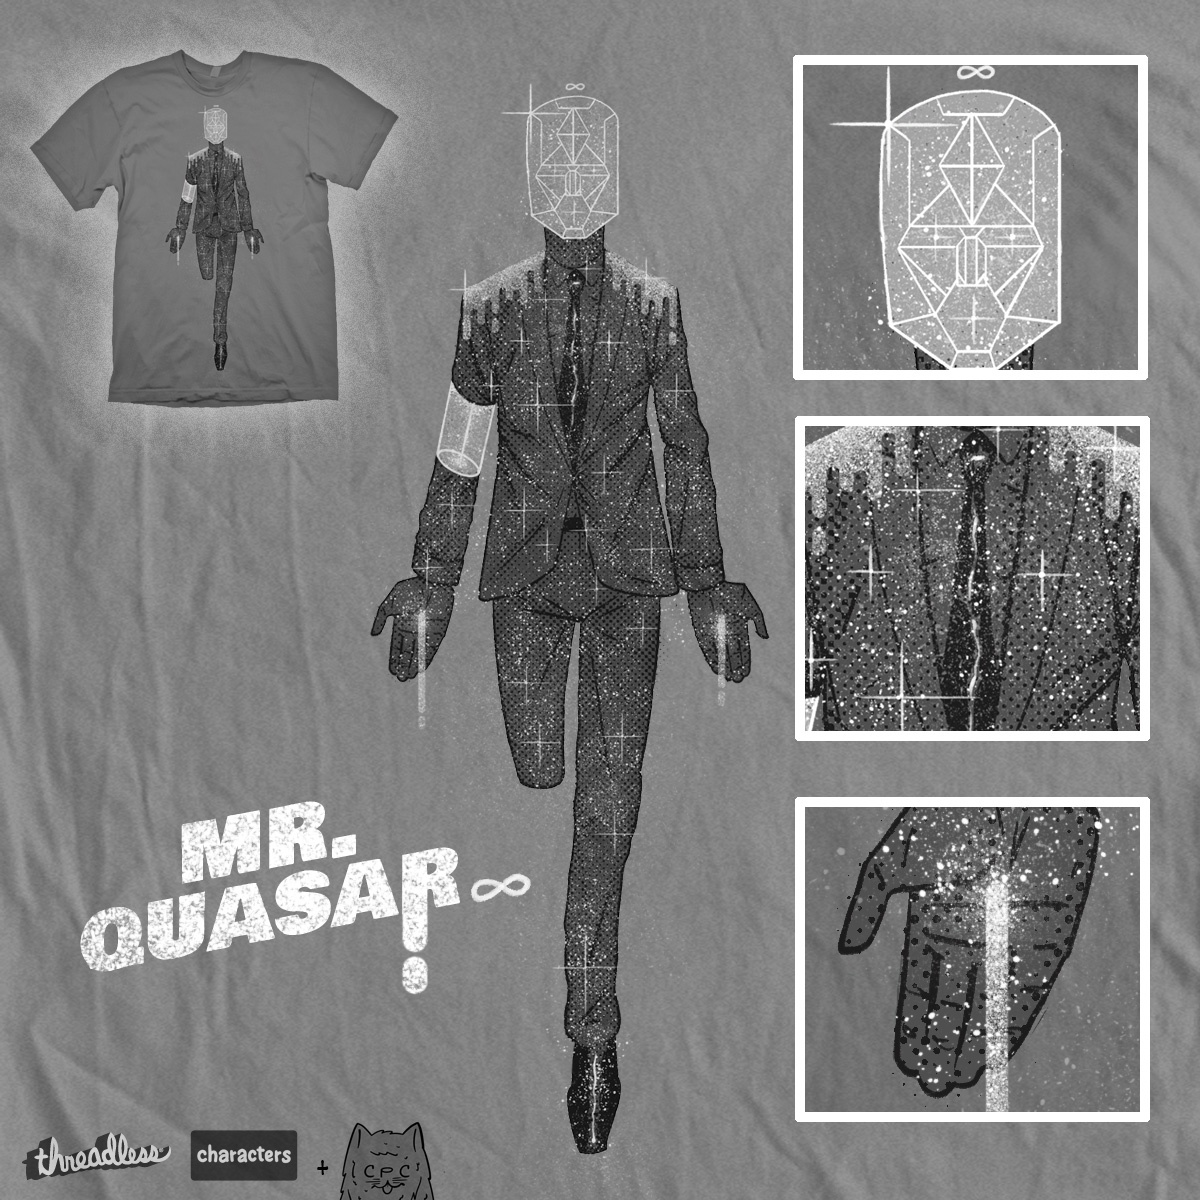 mr. quasar , a cool t-shirt design